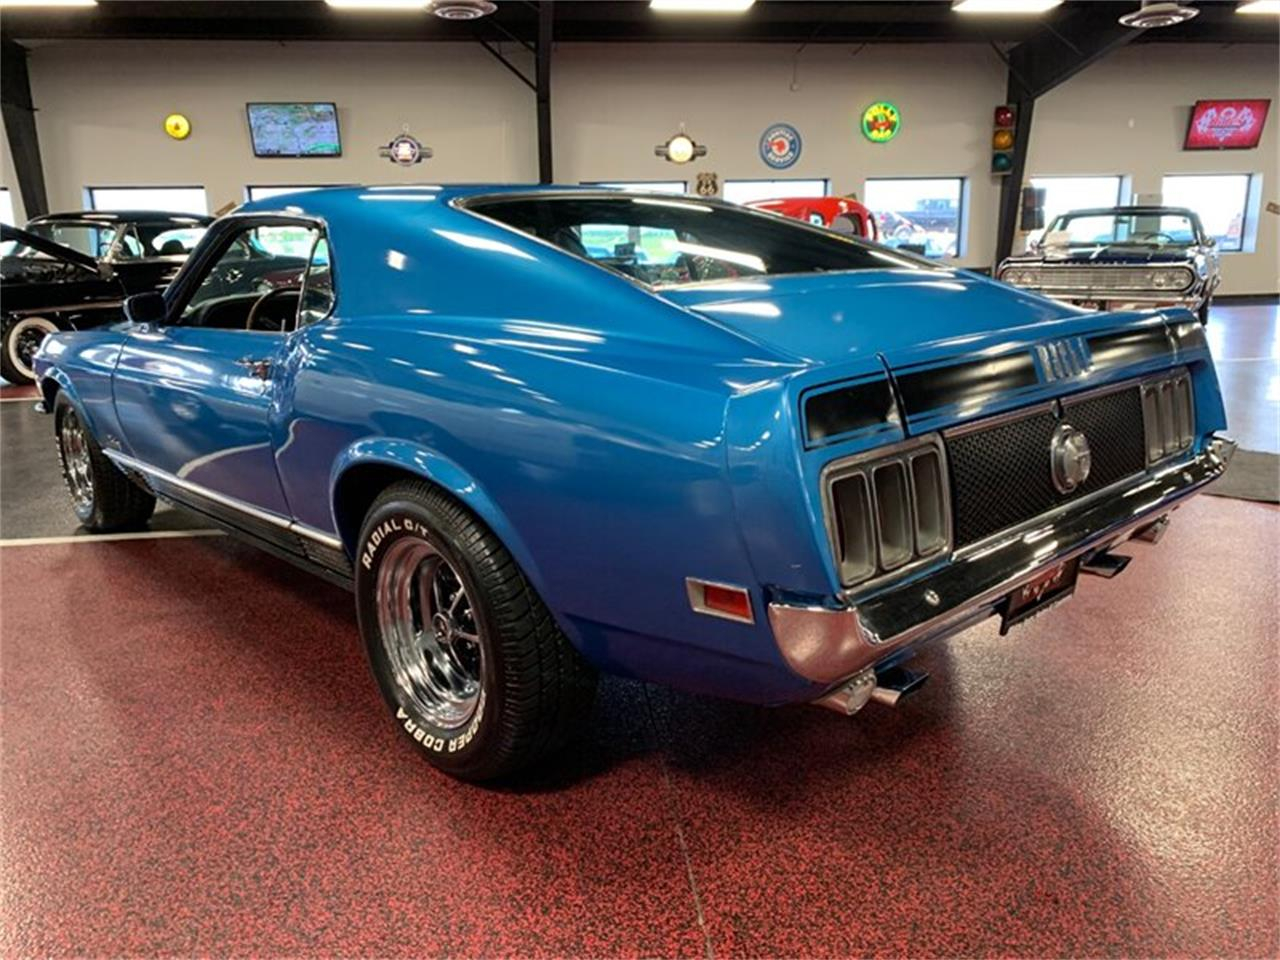 Large Picture of '70 Mustang Mach 1 located in Bismarck North Dakota - $37,900.00 Offered by Rides Auto Sales - QGAG